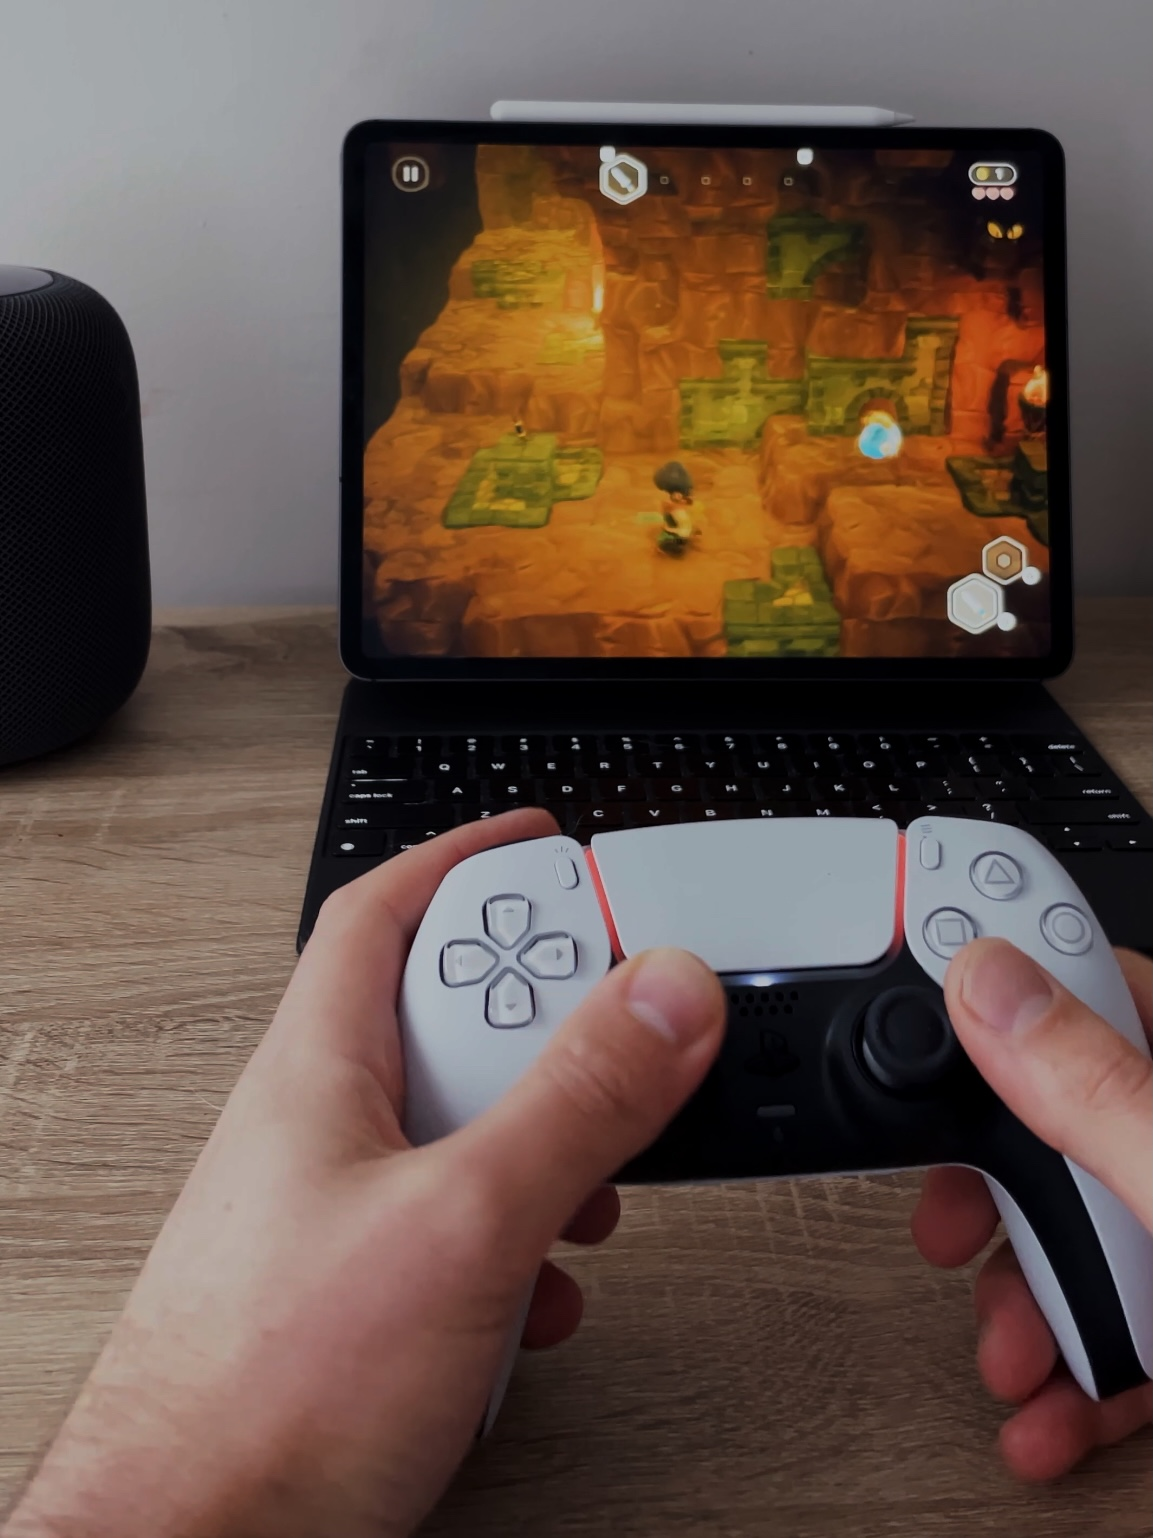 Playstation 5 Controller playing game on iPad Pro